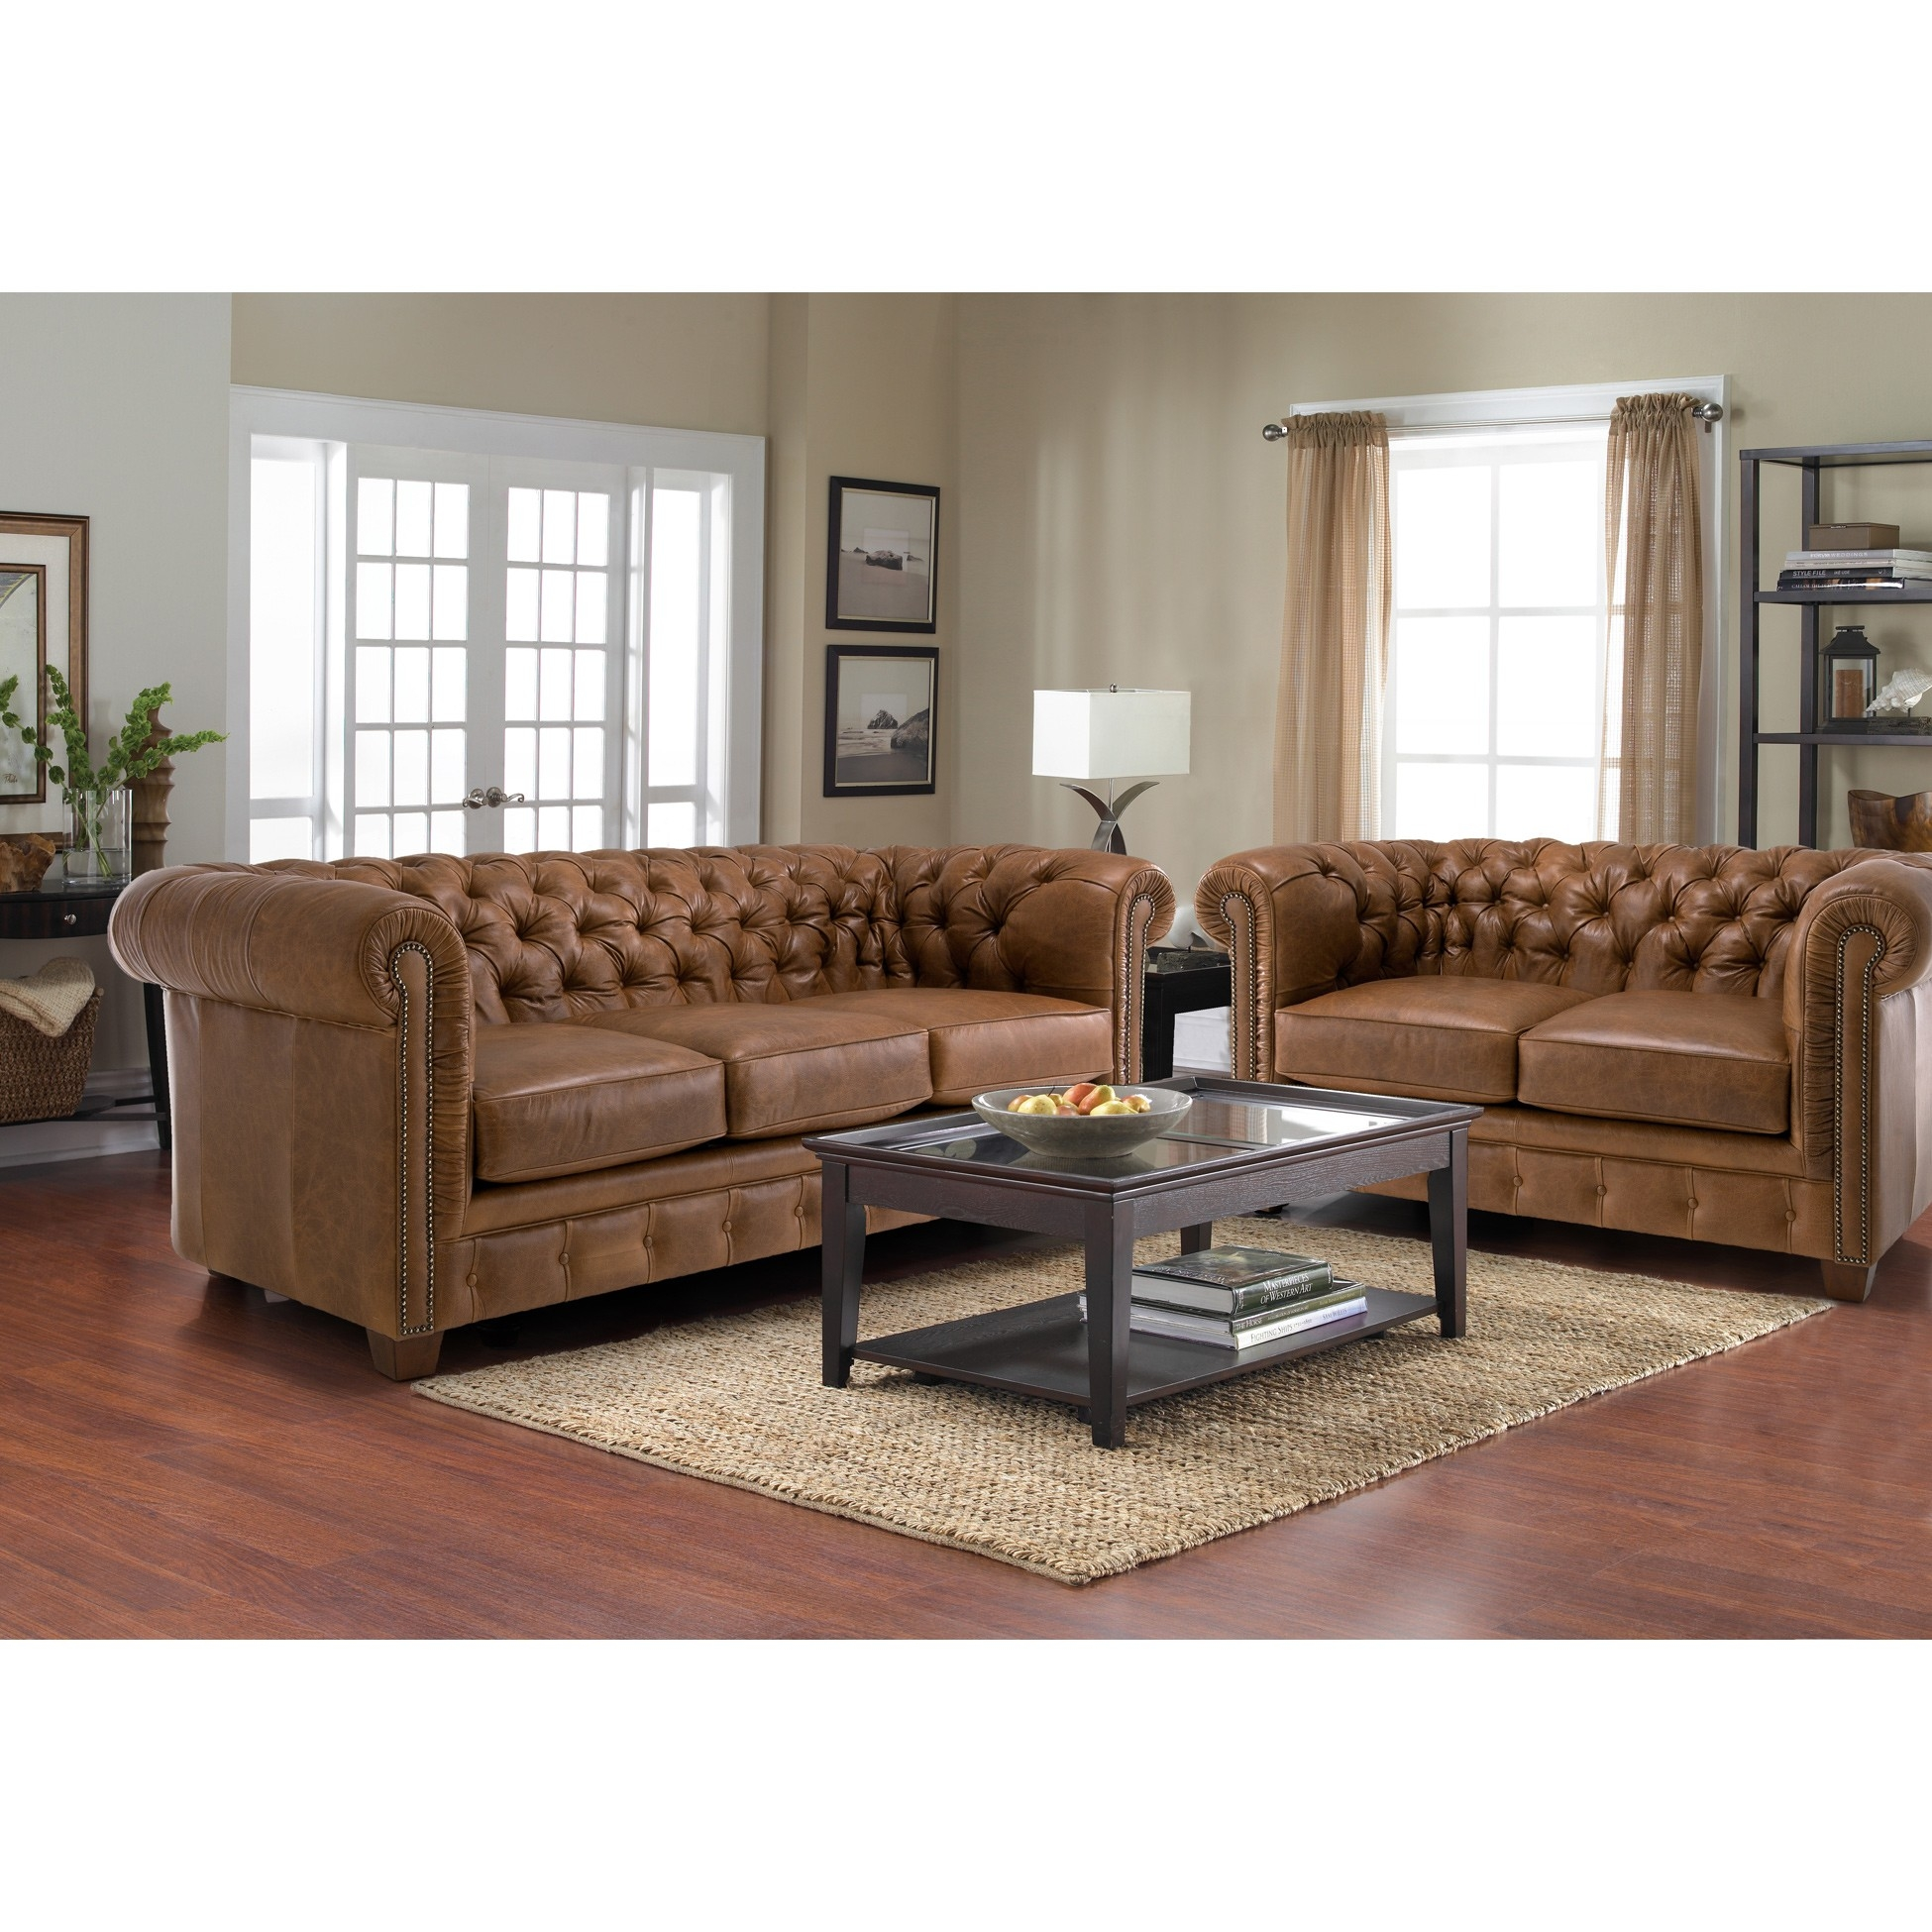 Sofas Center Distressed Leather Sofa For Dogs Sectional Atlanta Intended For Sofas For Dogs (Image 12 of 15)